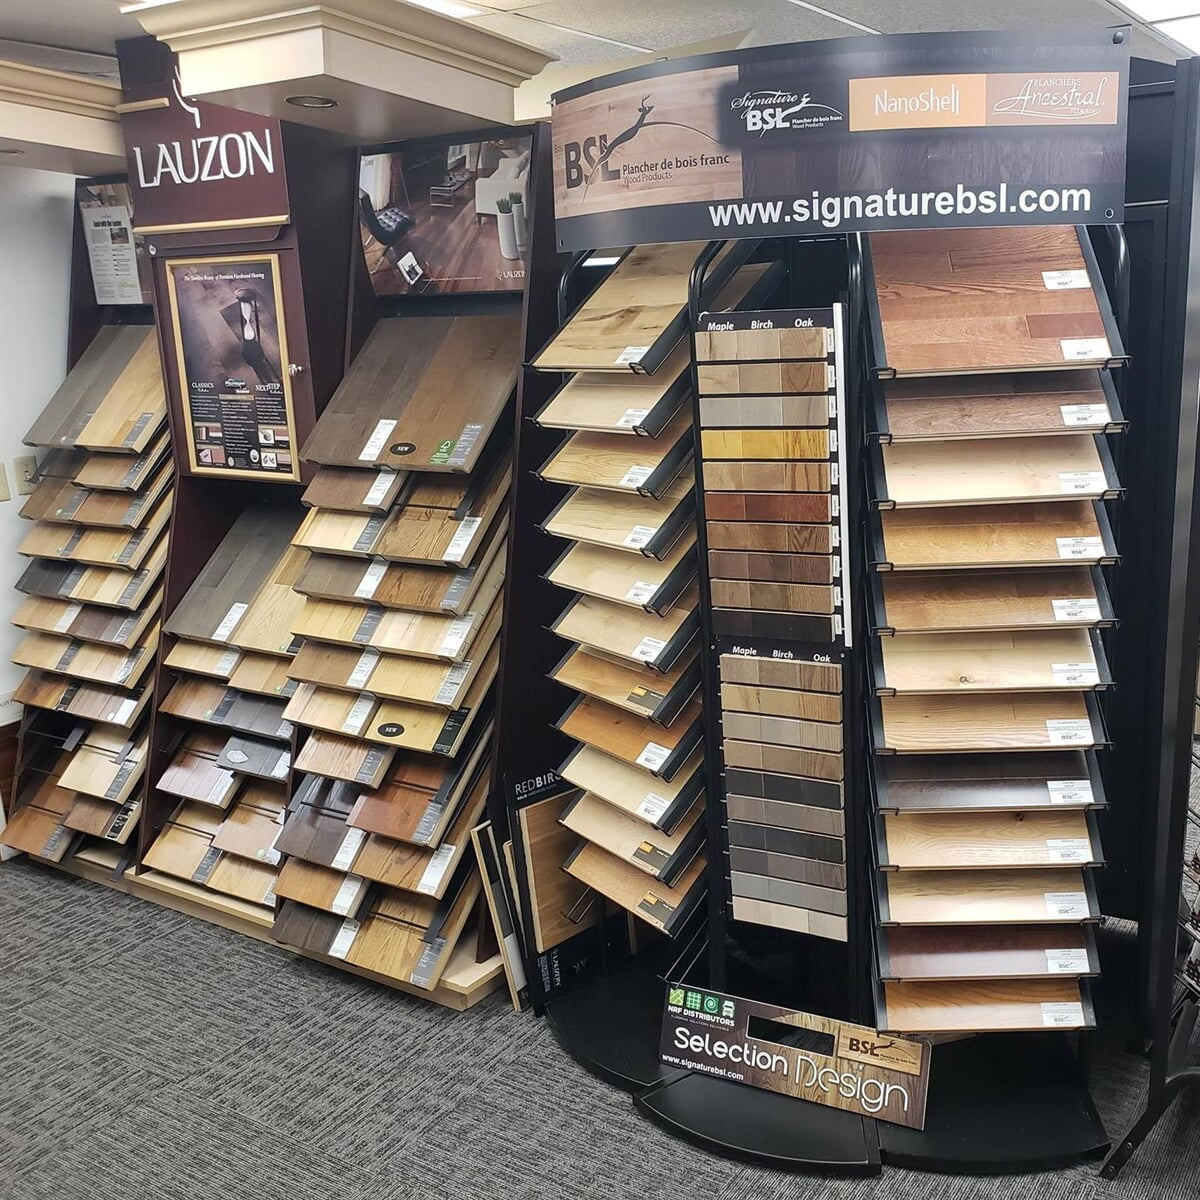 The Ontario Carpet Store showroom in Corning, NY has a lot to see!